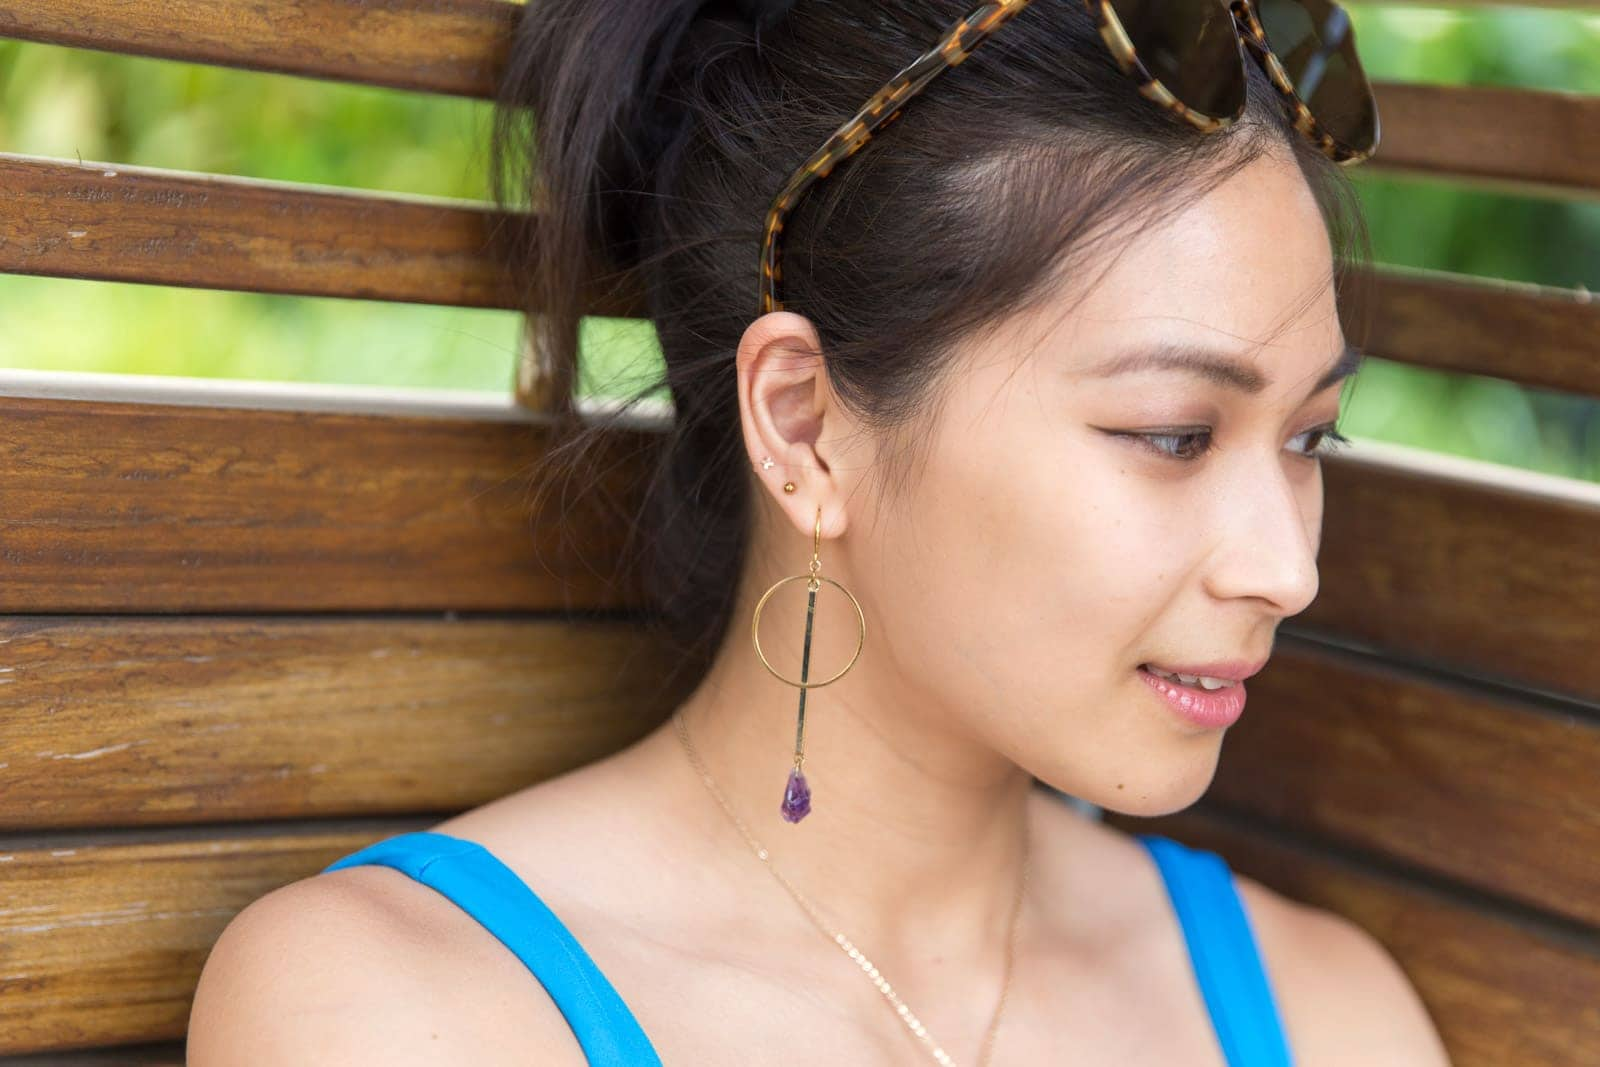 A closeup of a woman's face, her face angled slightly away from the camera. She has gold hoop earrings in her ear with a raw amethyst crystal drop